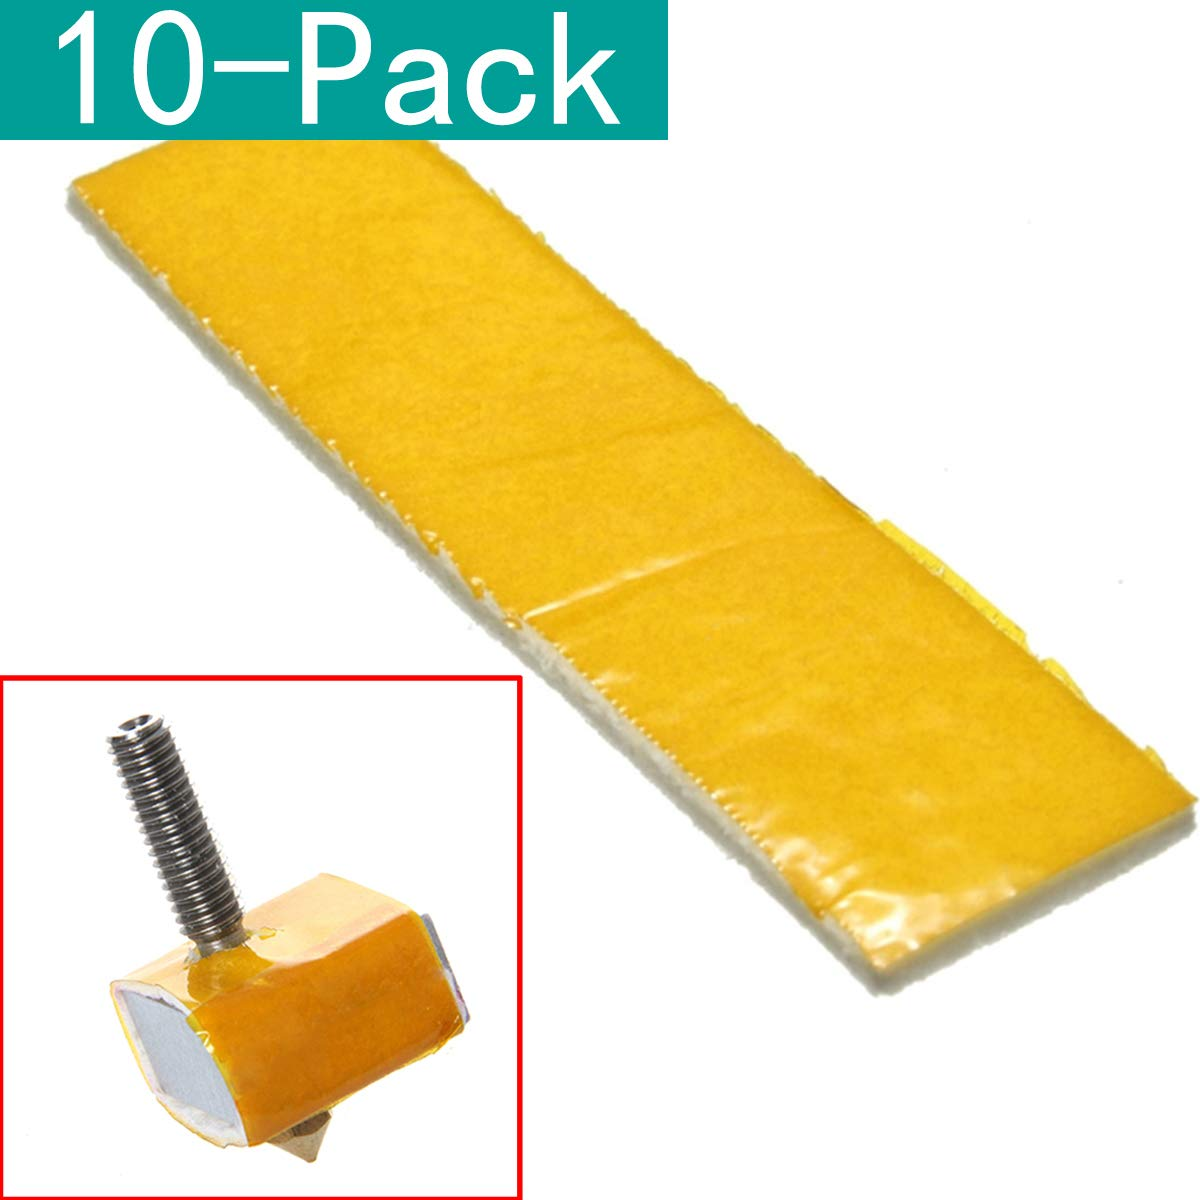 Youmile 10-Pack 3mm Thick Heating Block Cotton Nozzle Heat Insulation For 3D Printer